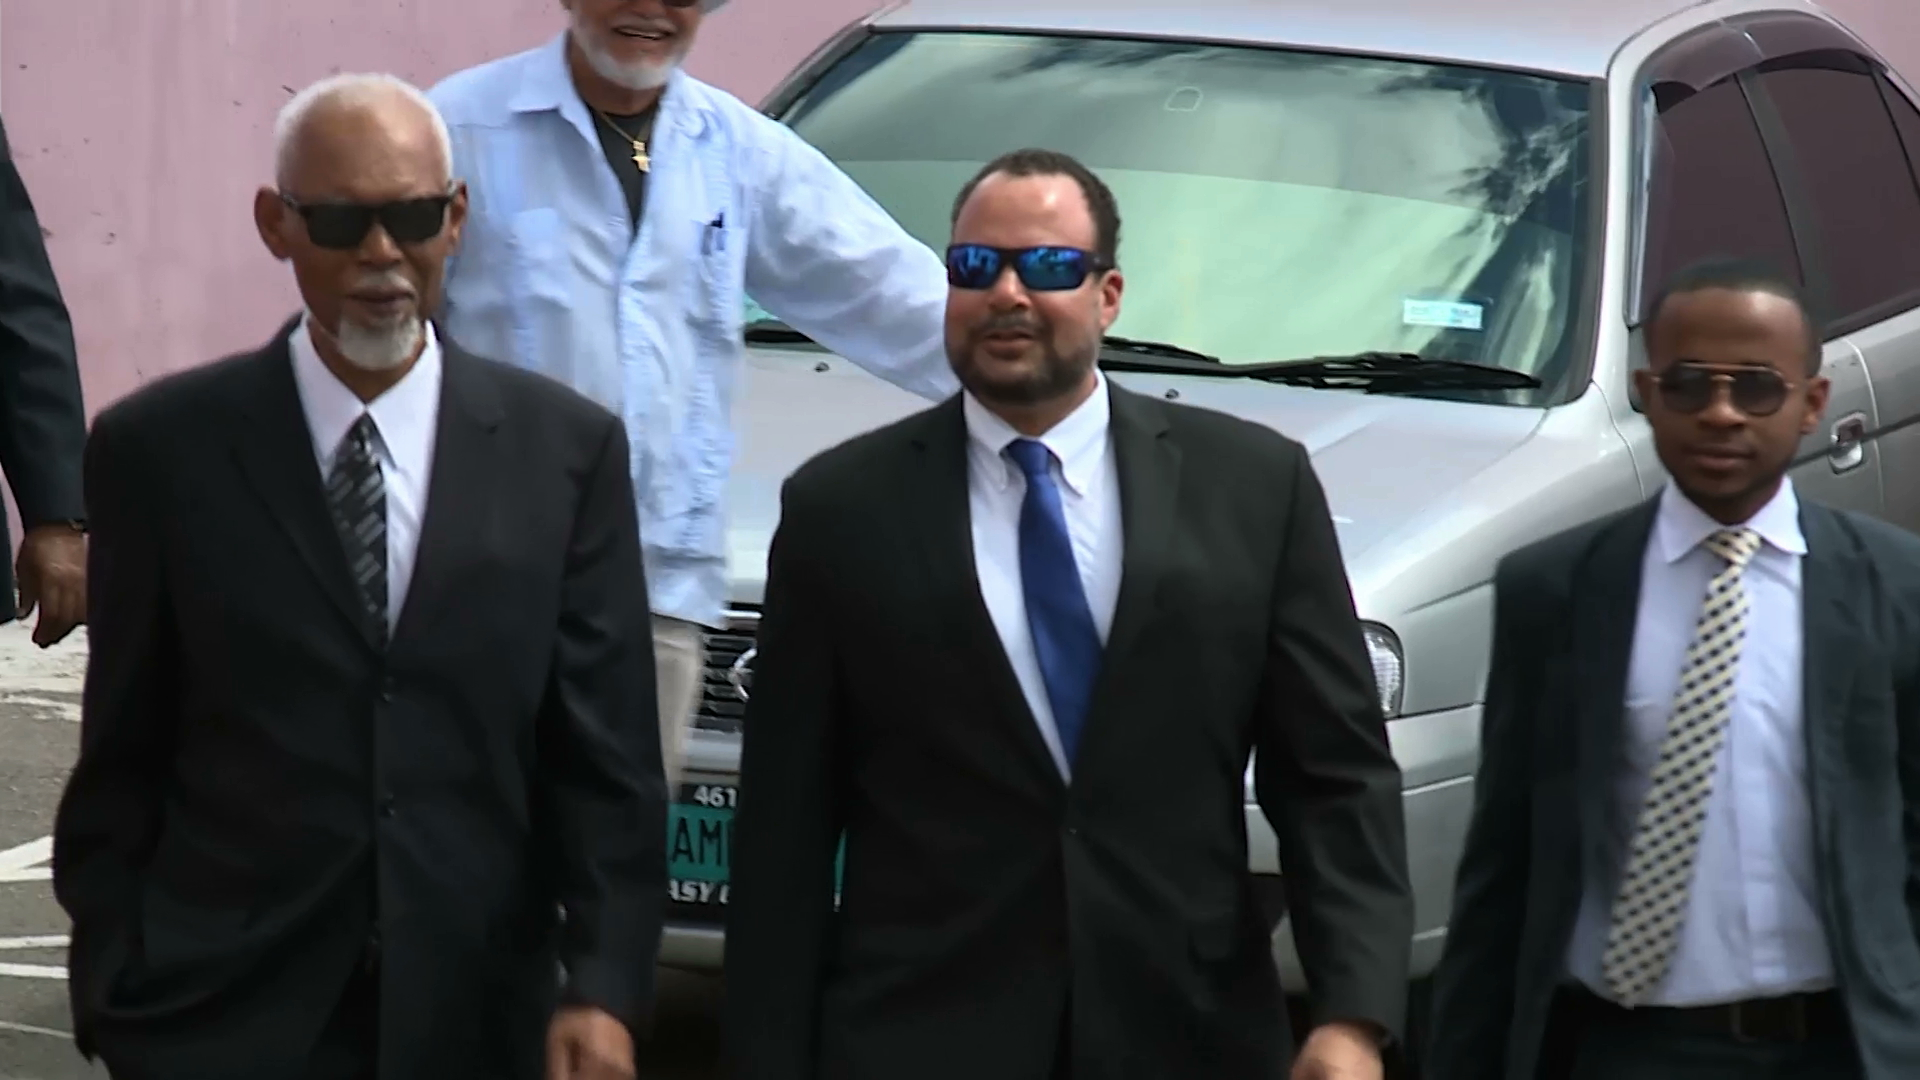 Former senator extortion trial resumes